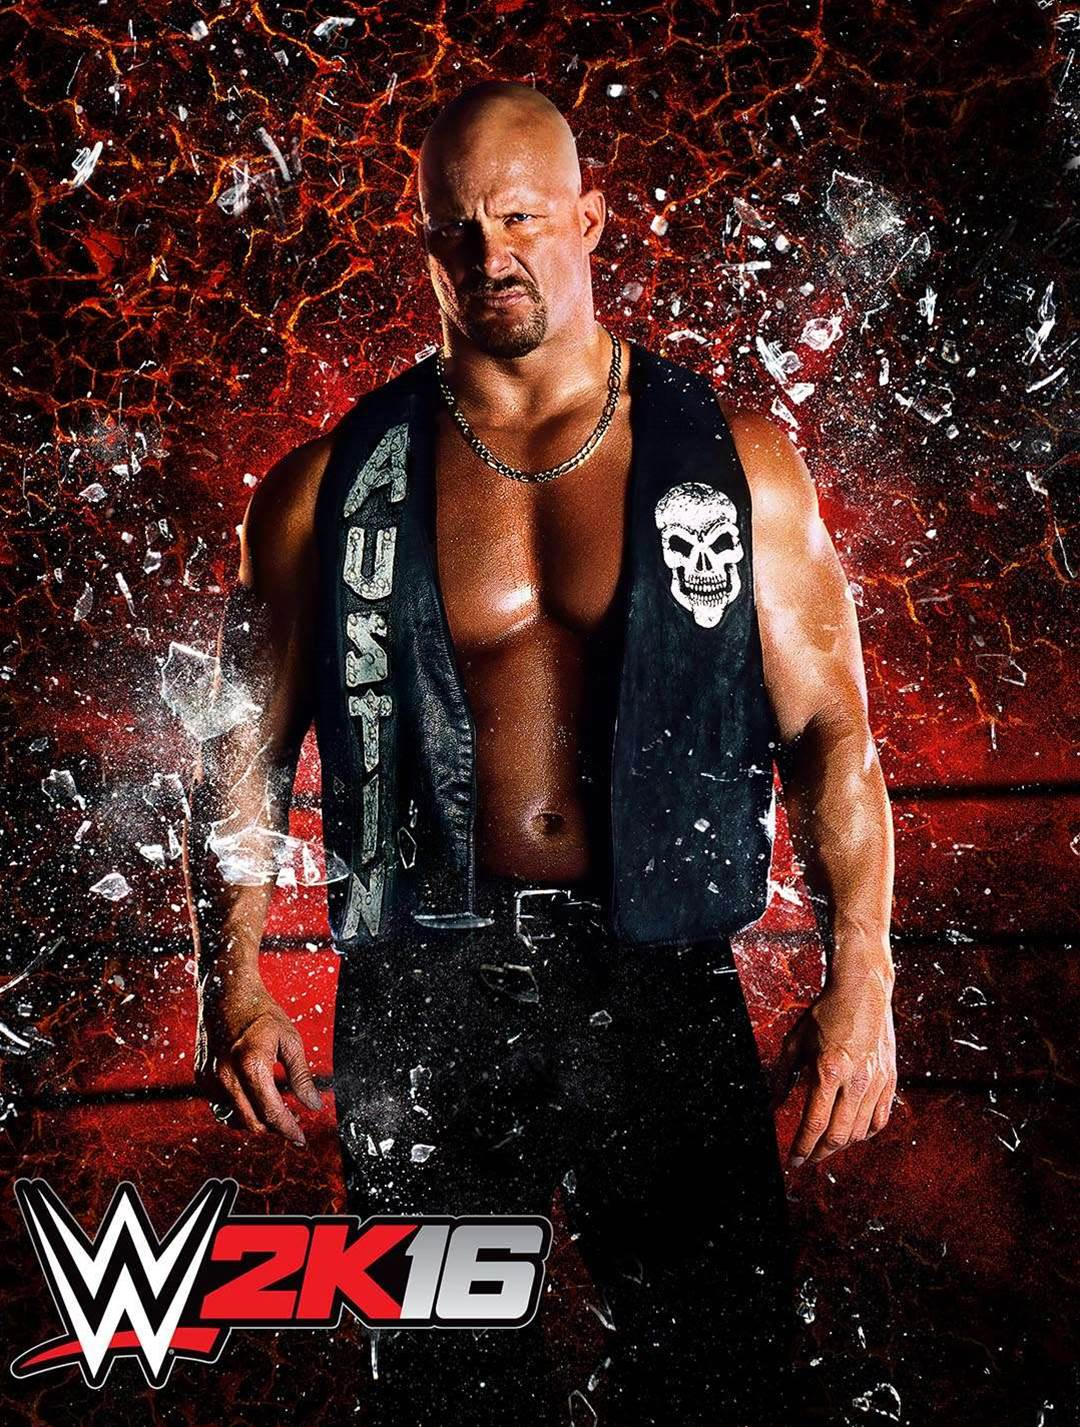 Stone Cold will be on the cover of WWE 2K16